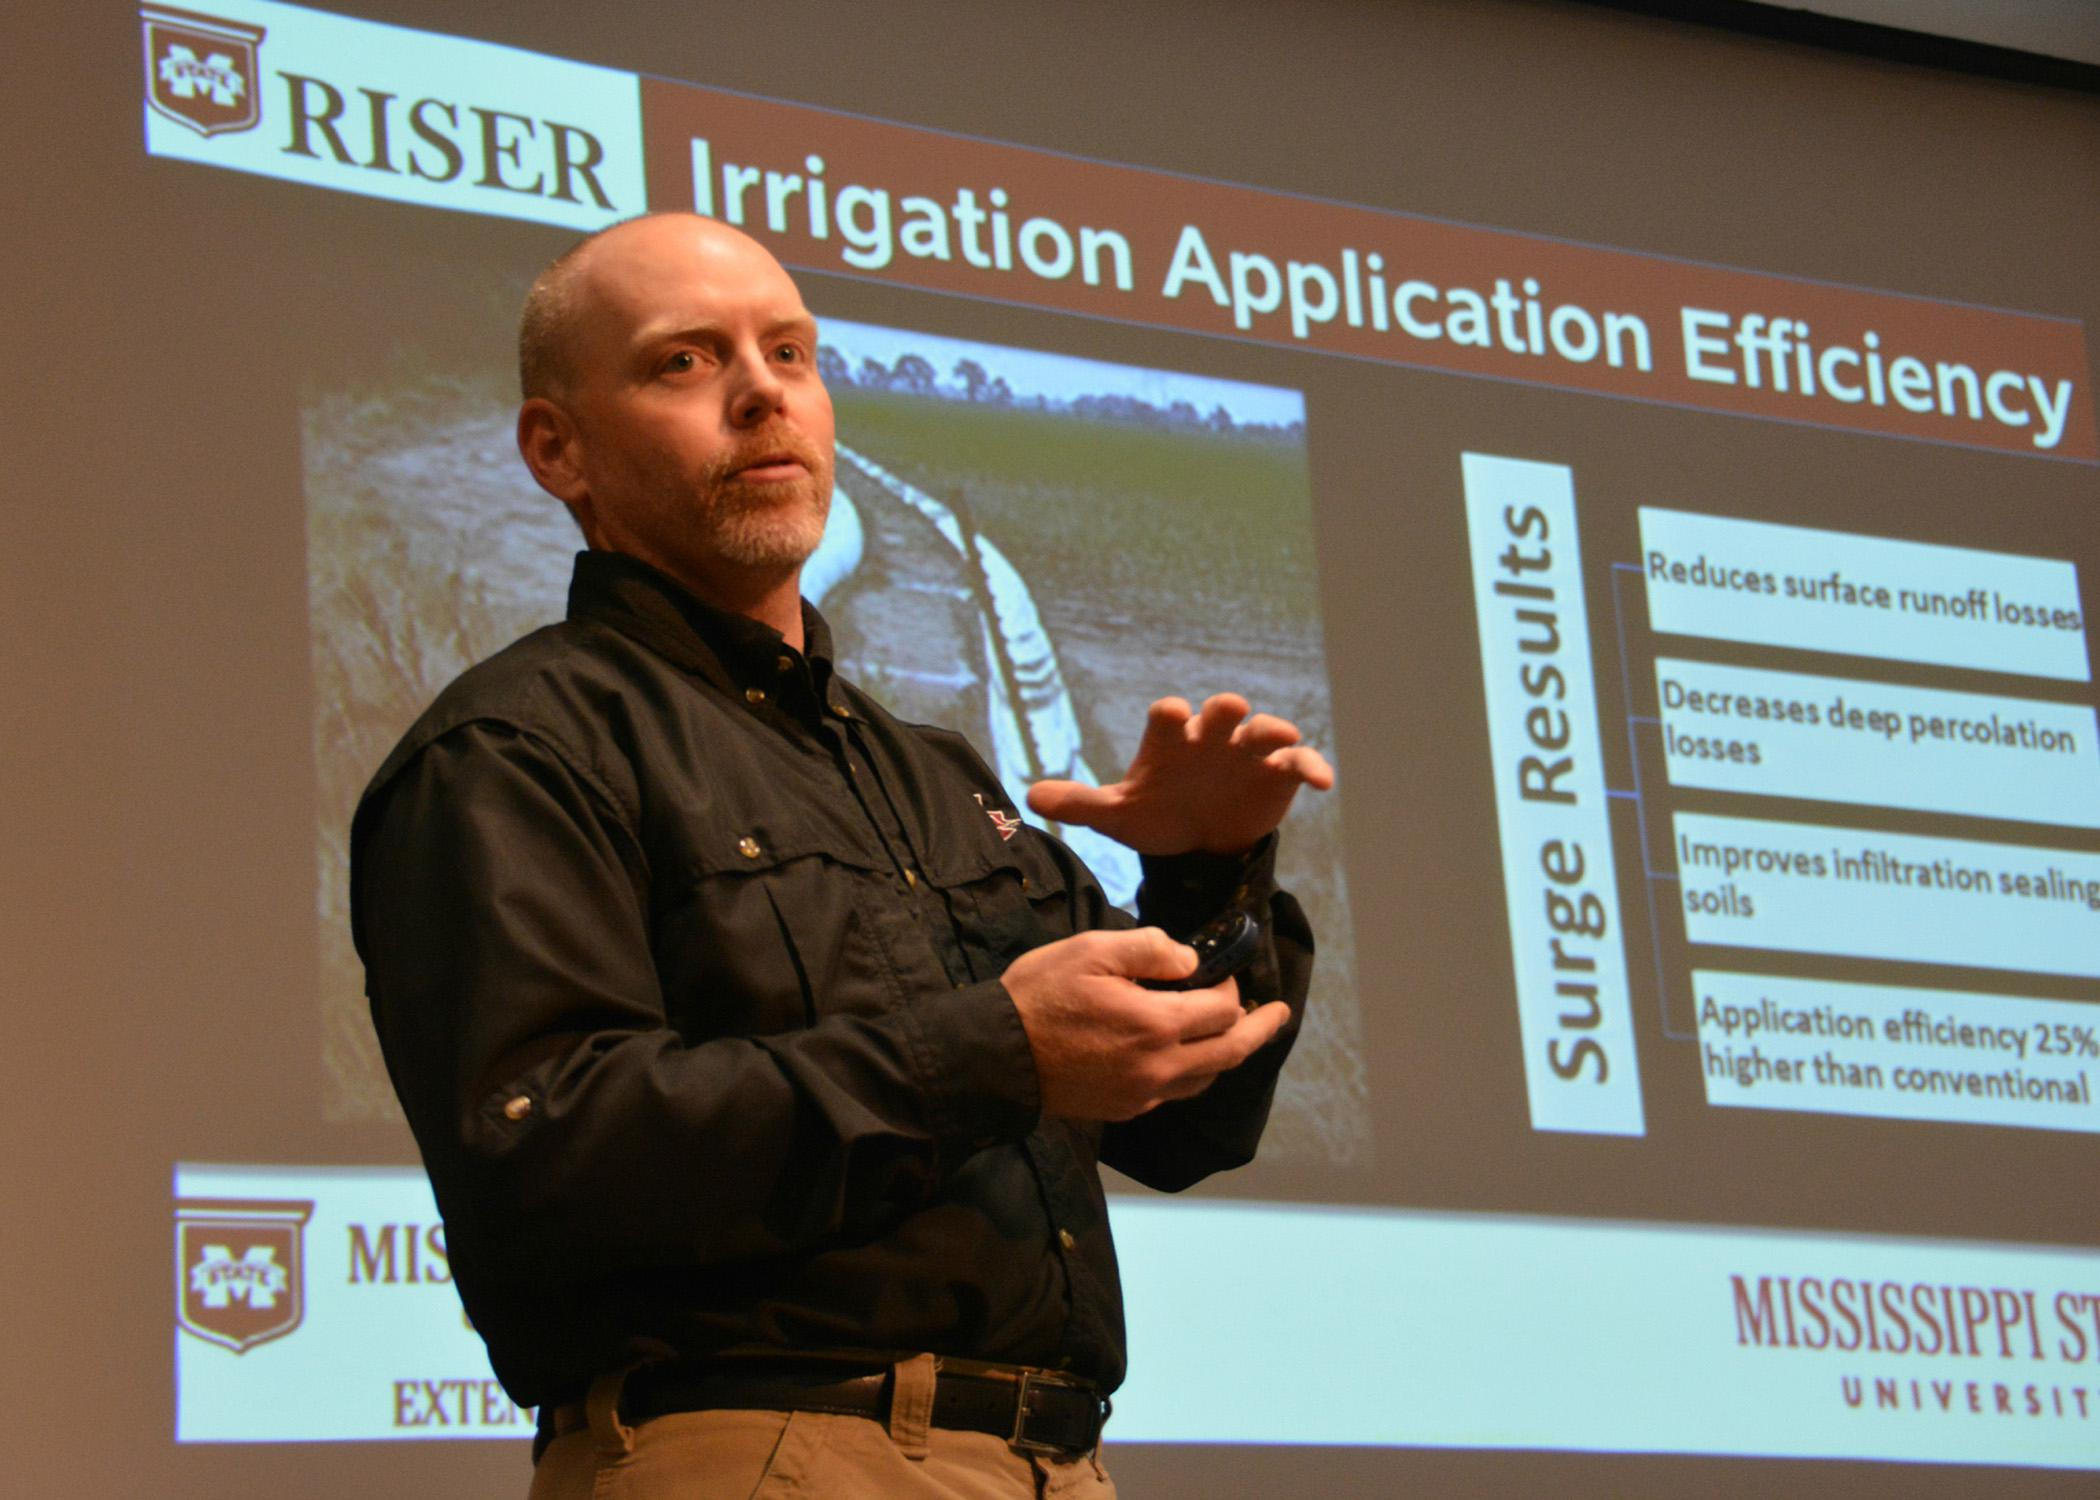 Jason Krutz, irrigation specialist with the Mississippi State University Extension Service, addresses water efficiency on cropland during the Mississippi Delta Irrigation Summit in Stoneville, Mississippi, on Dec. 10, 2014. (Photo by MSU Ag Communications/Linda Breazeale)